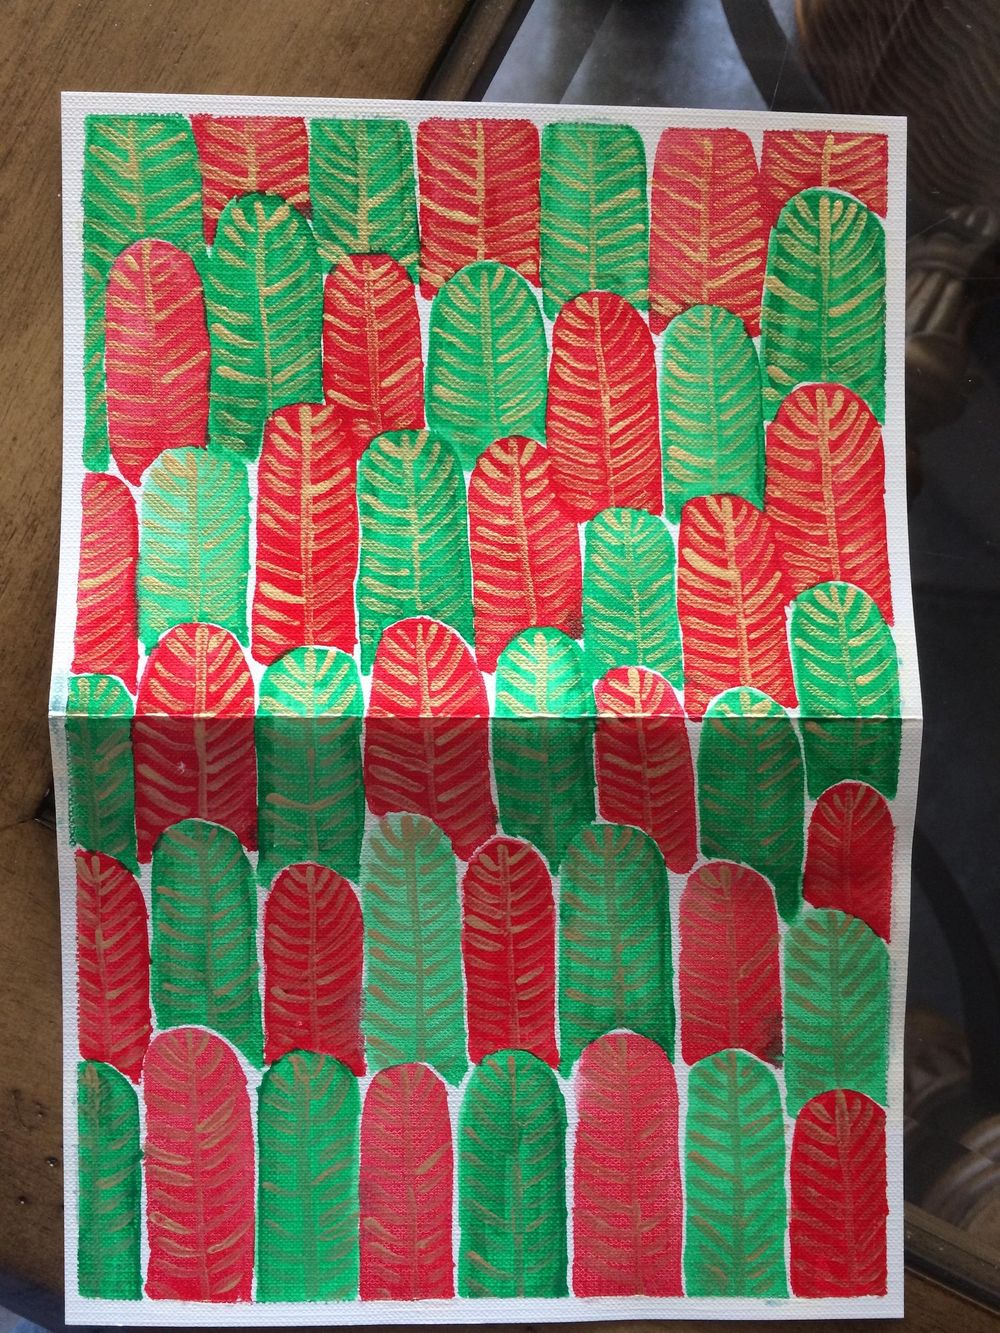 Feather Forest Dec 5 - image 1 - student project